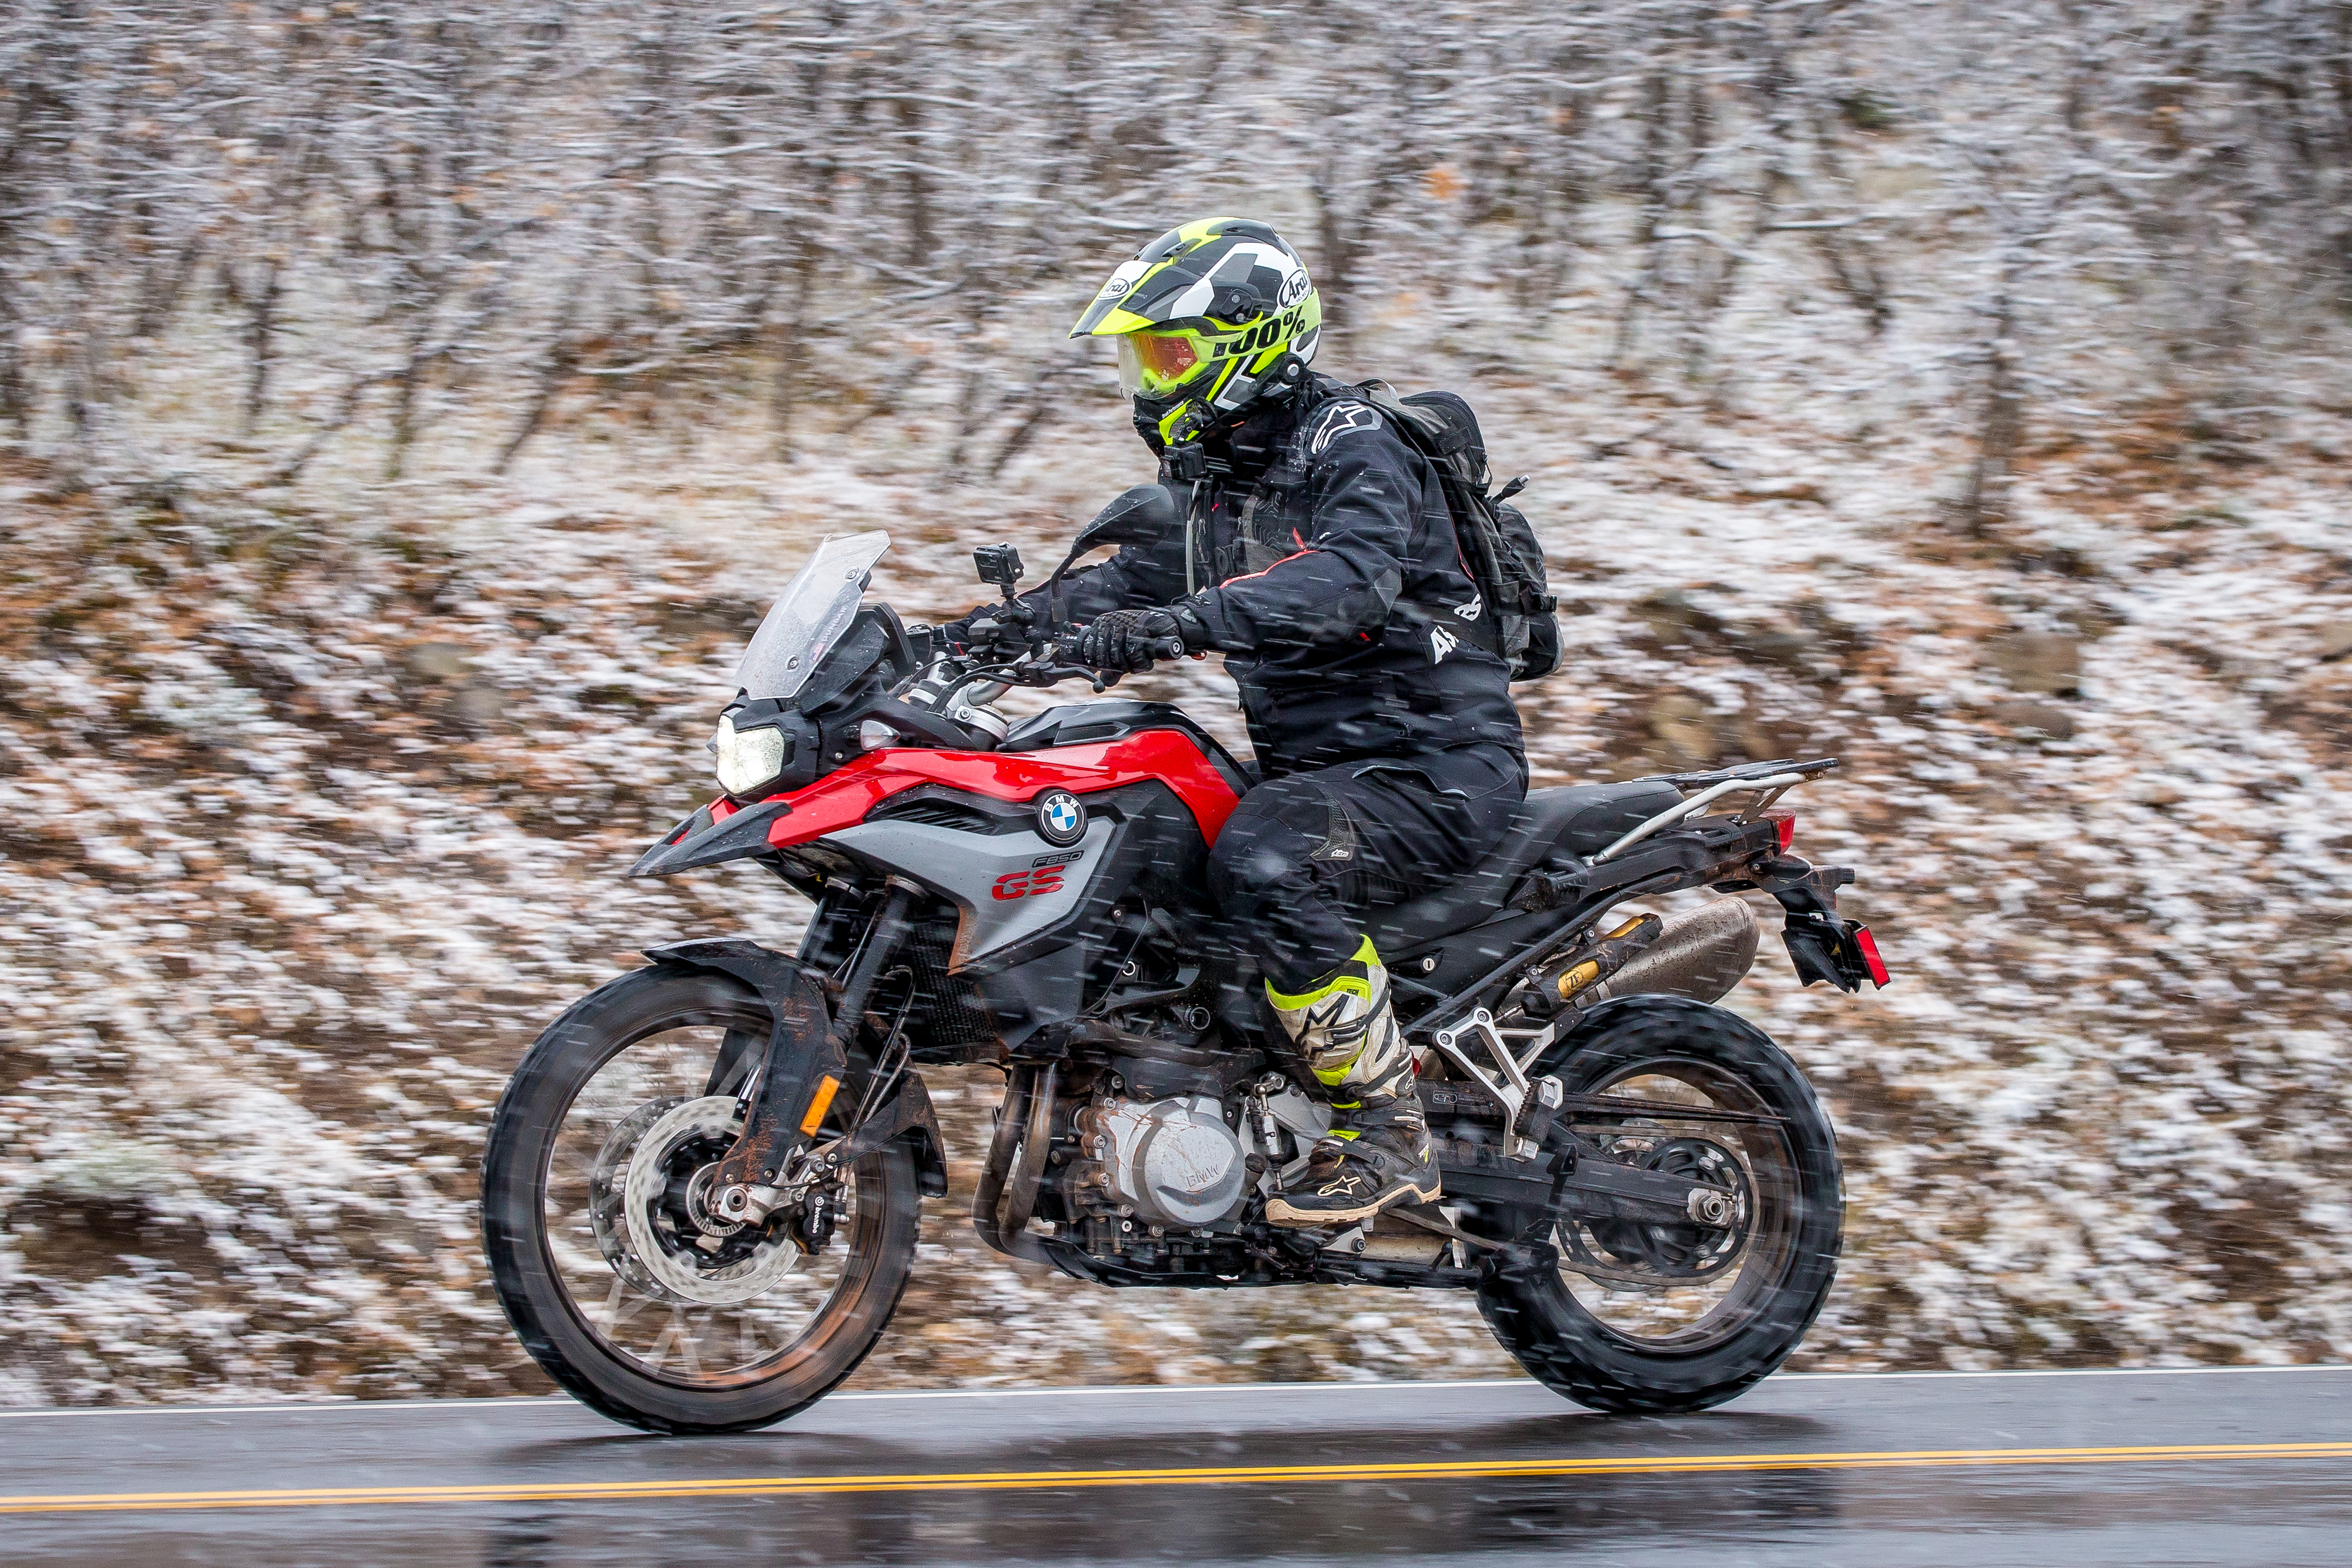 Fabulous 2019 Bmw F 850 Gs First Ride Review Revzilla Unemploymentrelief Wooden Chair Designs For Living Room Unemploymentrelieforg